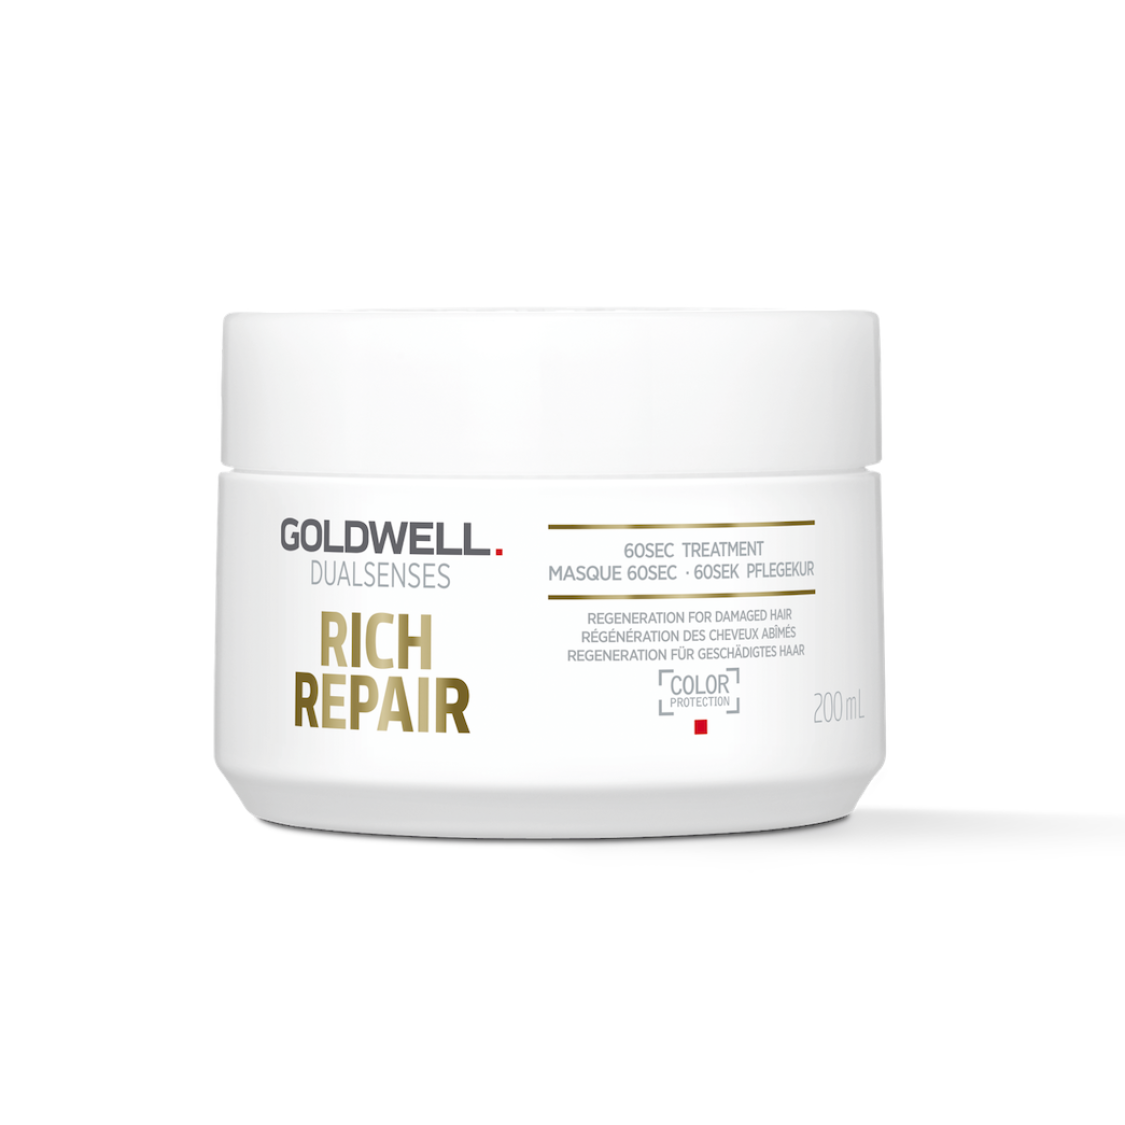 Goldwell - Dualsenses Rich Repair 60sec Treatment 200ml